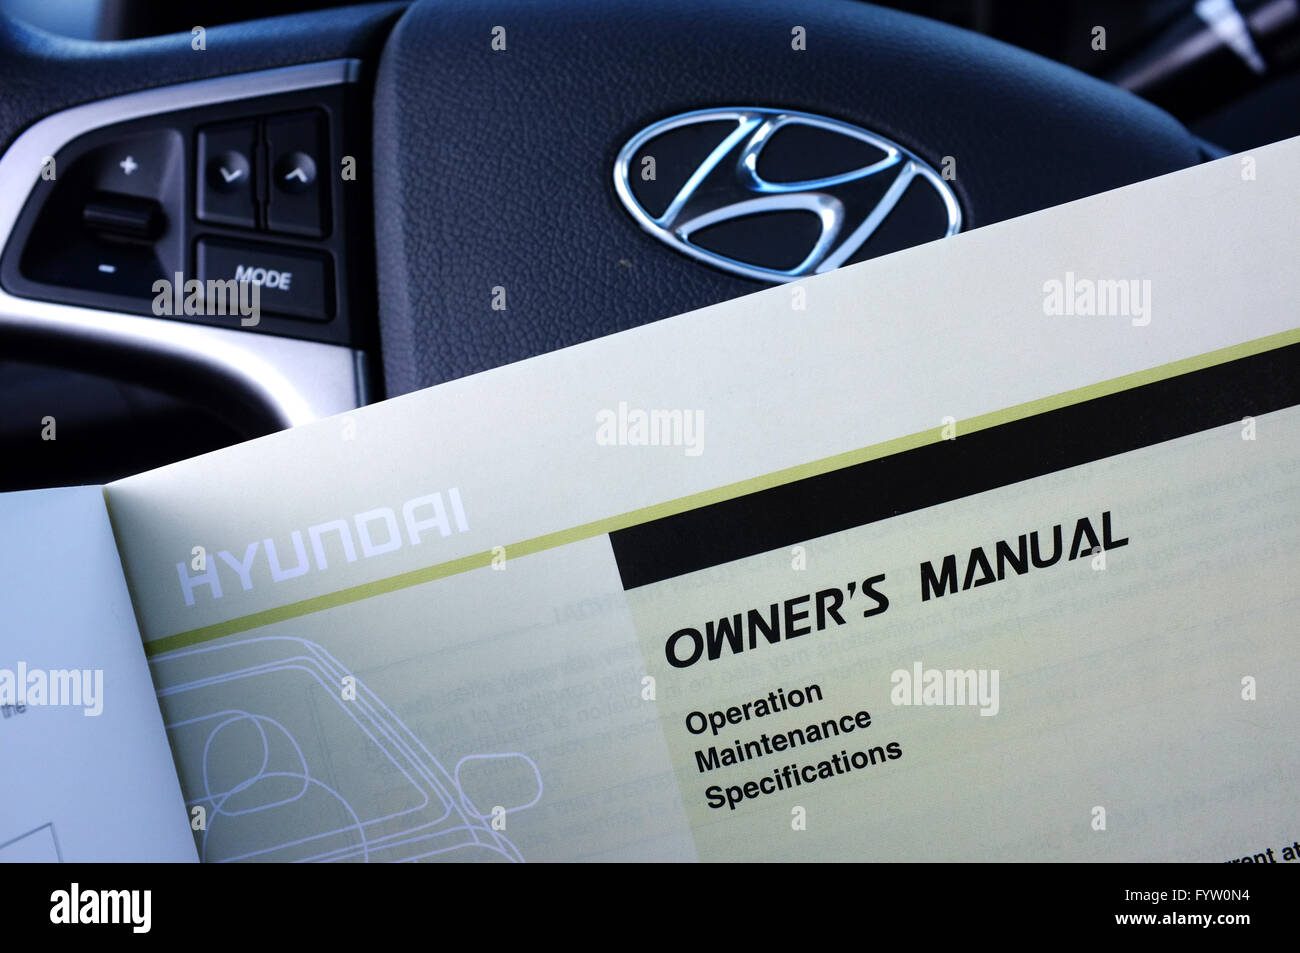 Hyundai Owners Manual Stock Photos Accent Schematic A In Front Of Steering Wheel Image